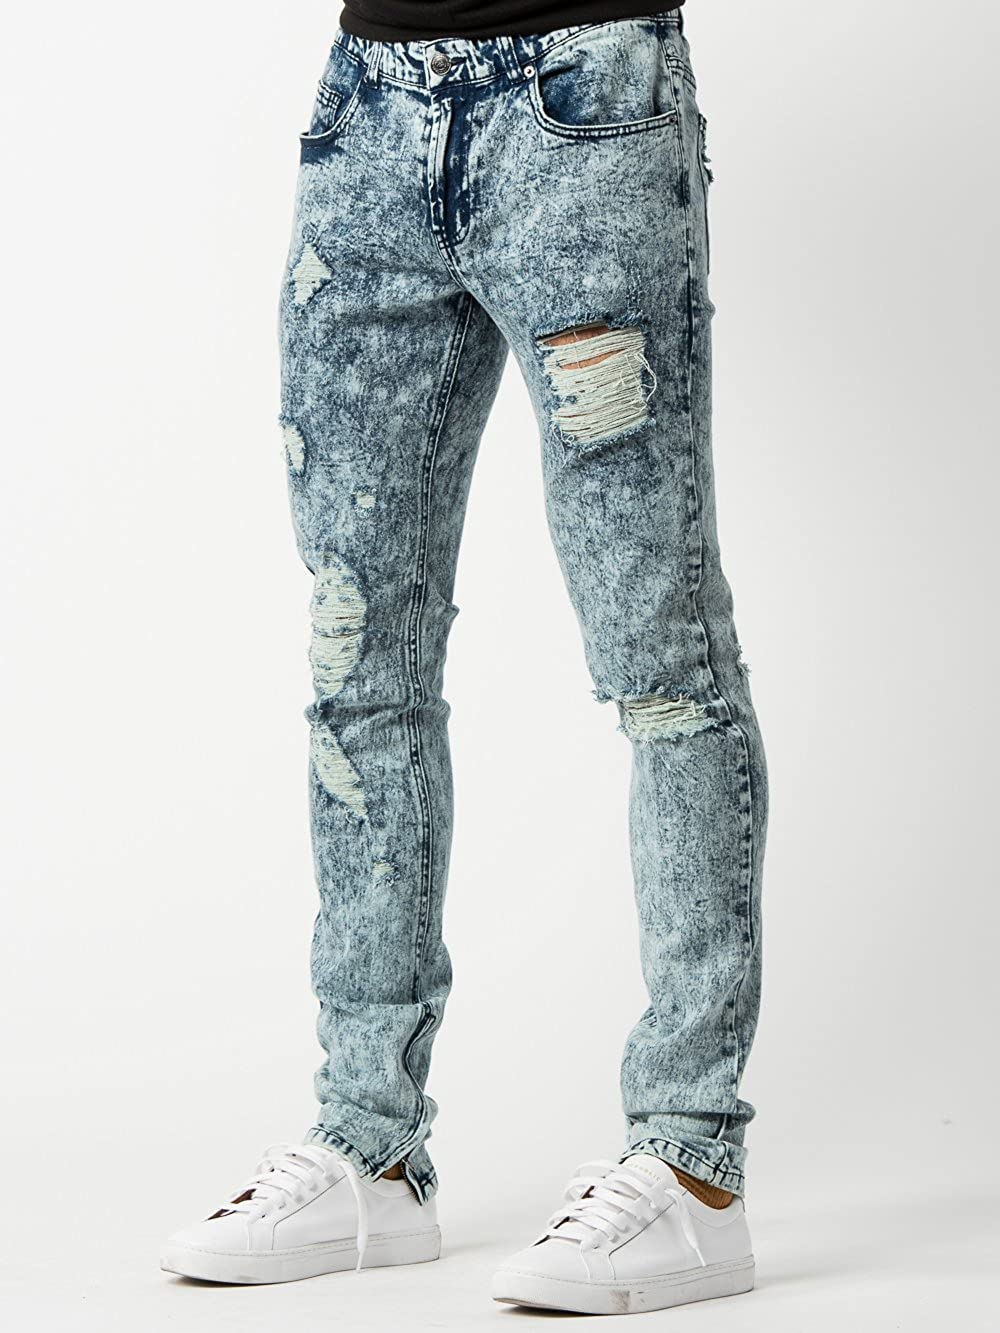 6247d6699 Amazon.com: Young and Reckless - Roland Tapered Jeans - Acid Blue Bleach -  - Mens - Bottoms - Denim -: Clothing